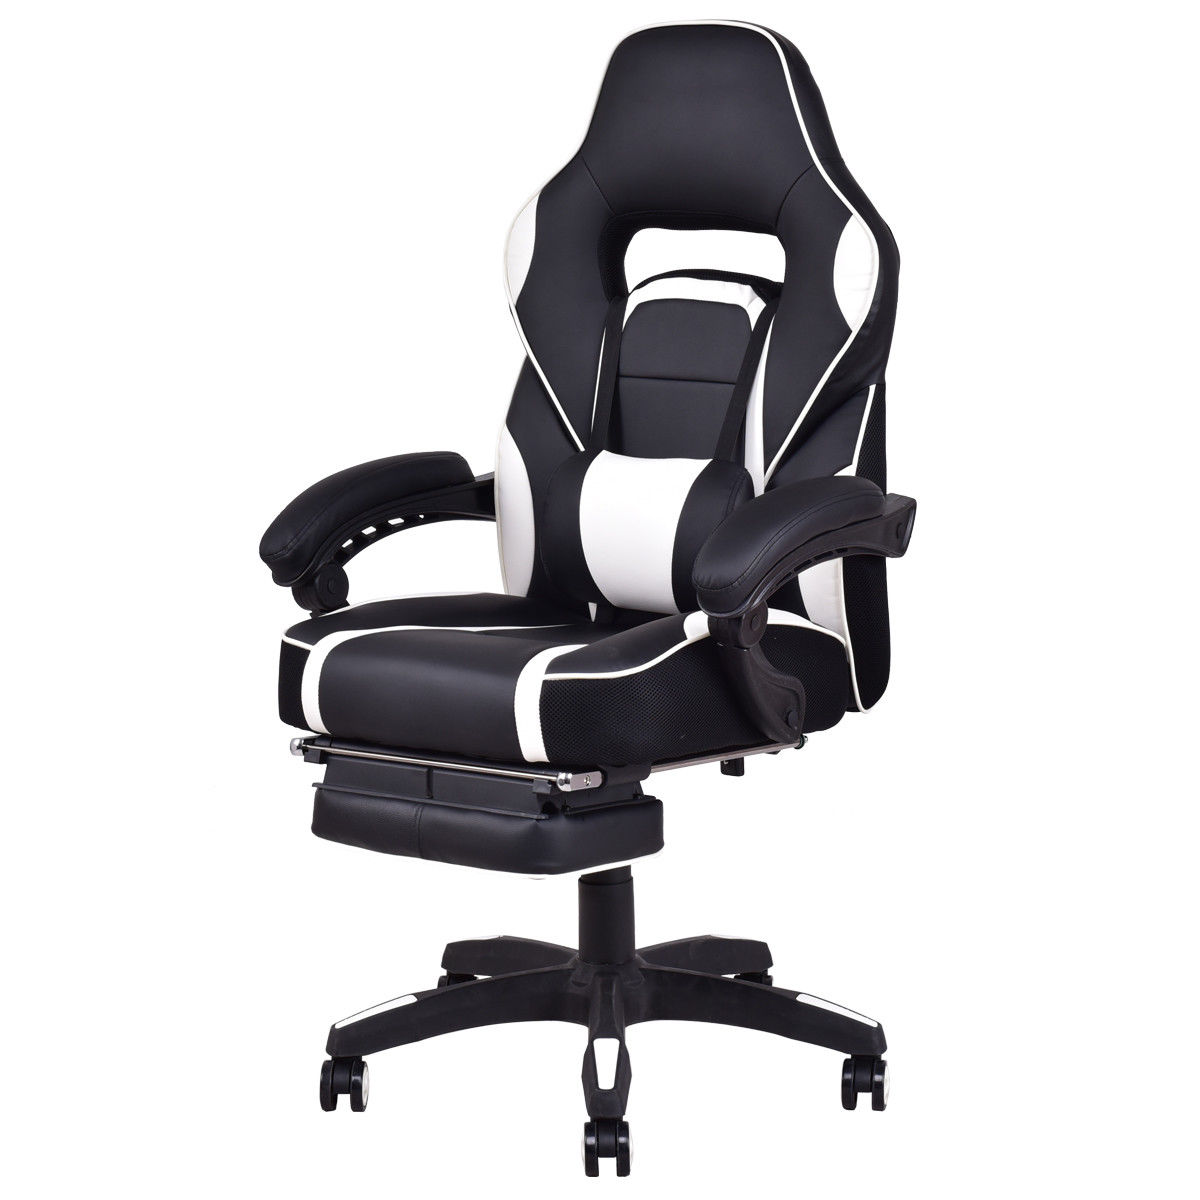 Costway Office Home Racing Style Executive High Back Gaming Chair W/ Ottoman